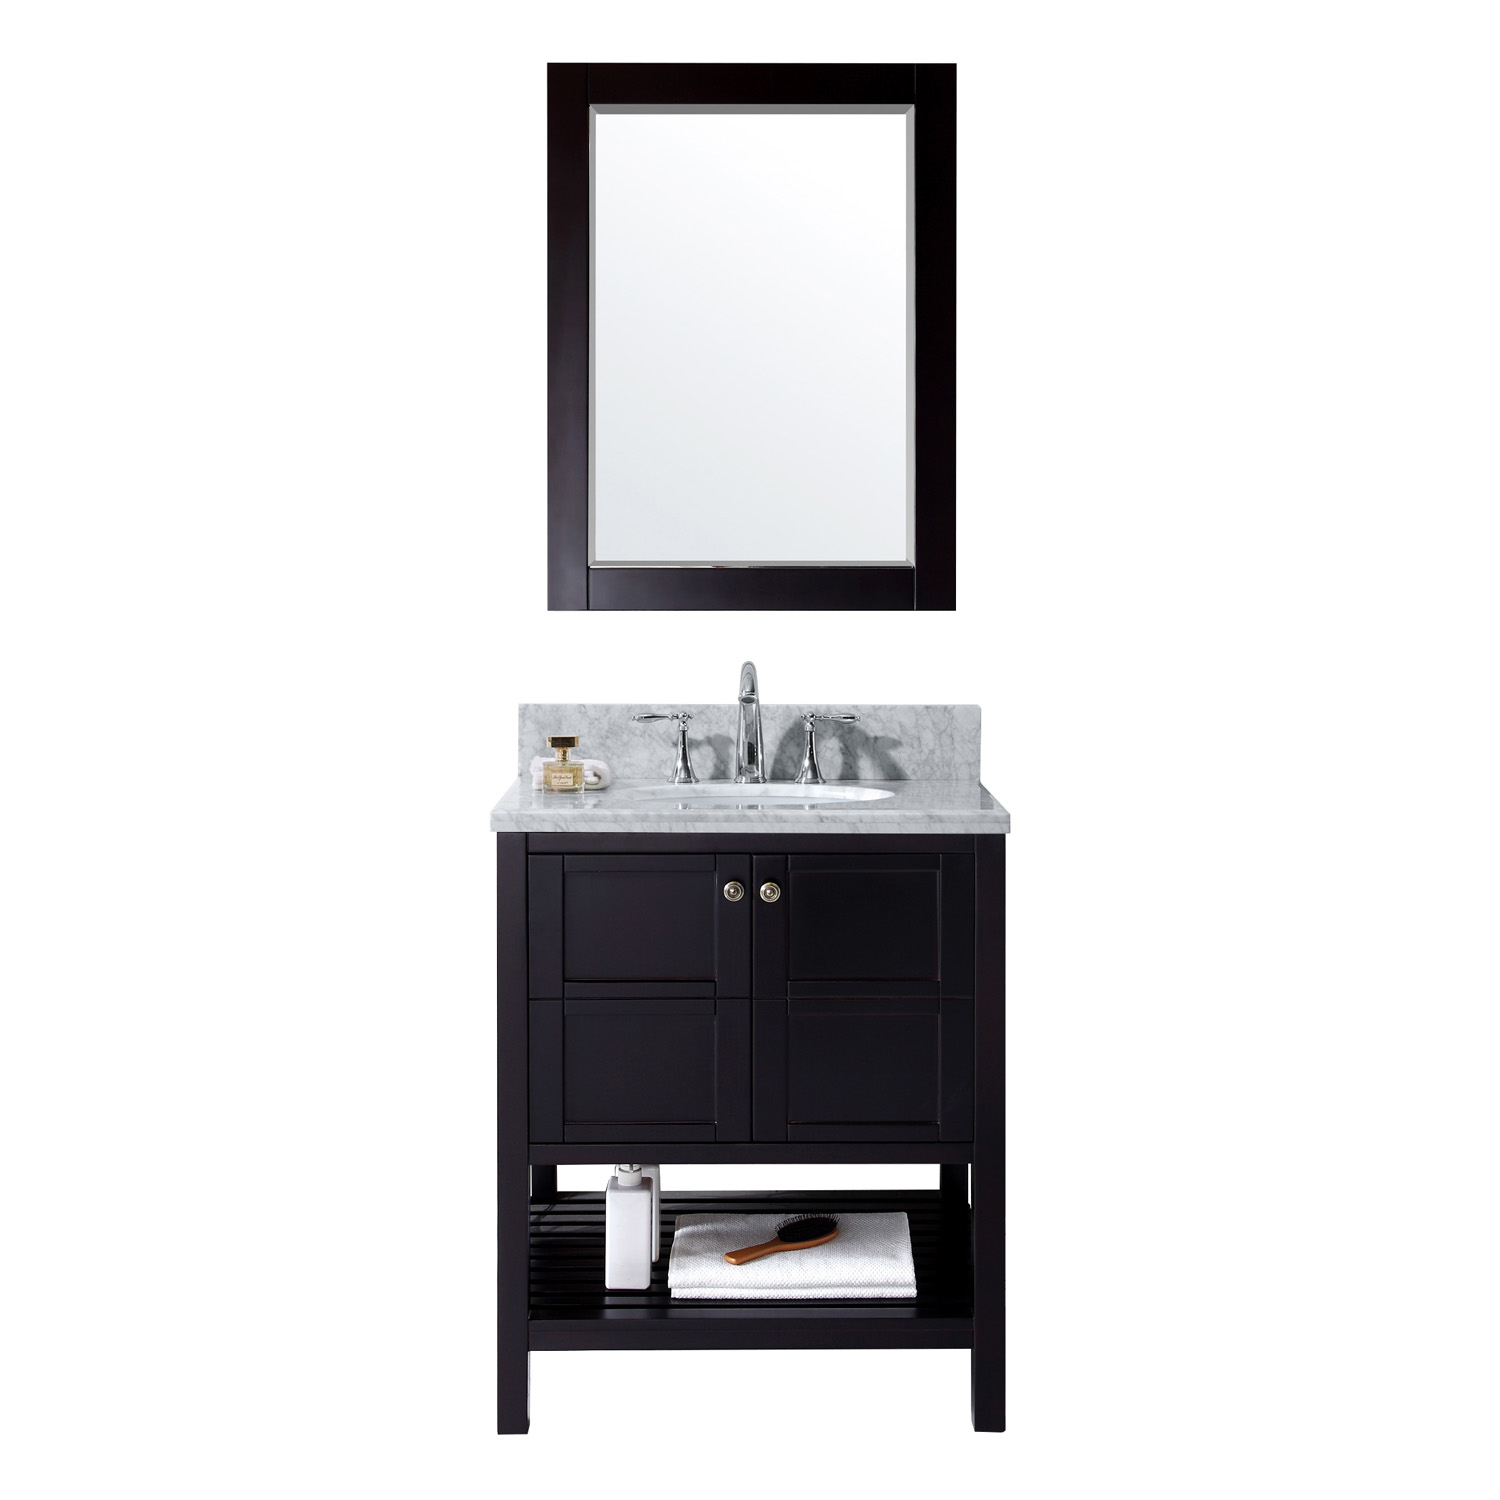 "30"" Single Bath Vanity in Espresso with Top, Sink and Mirror Options"